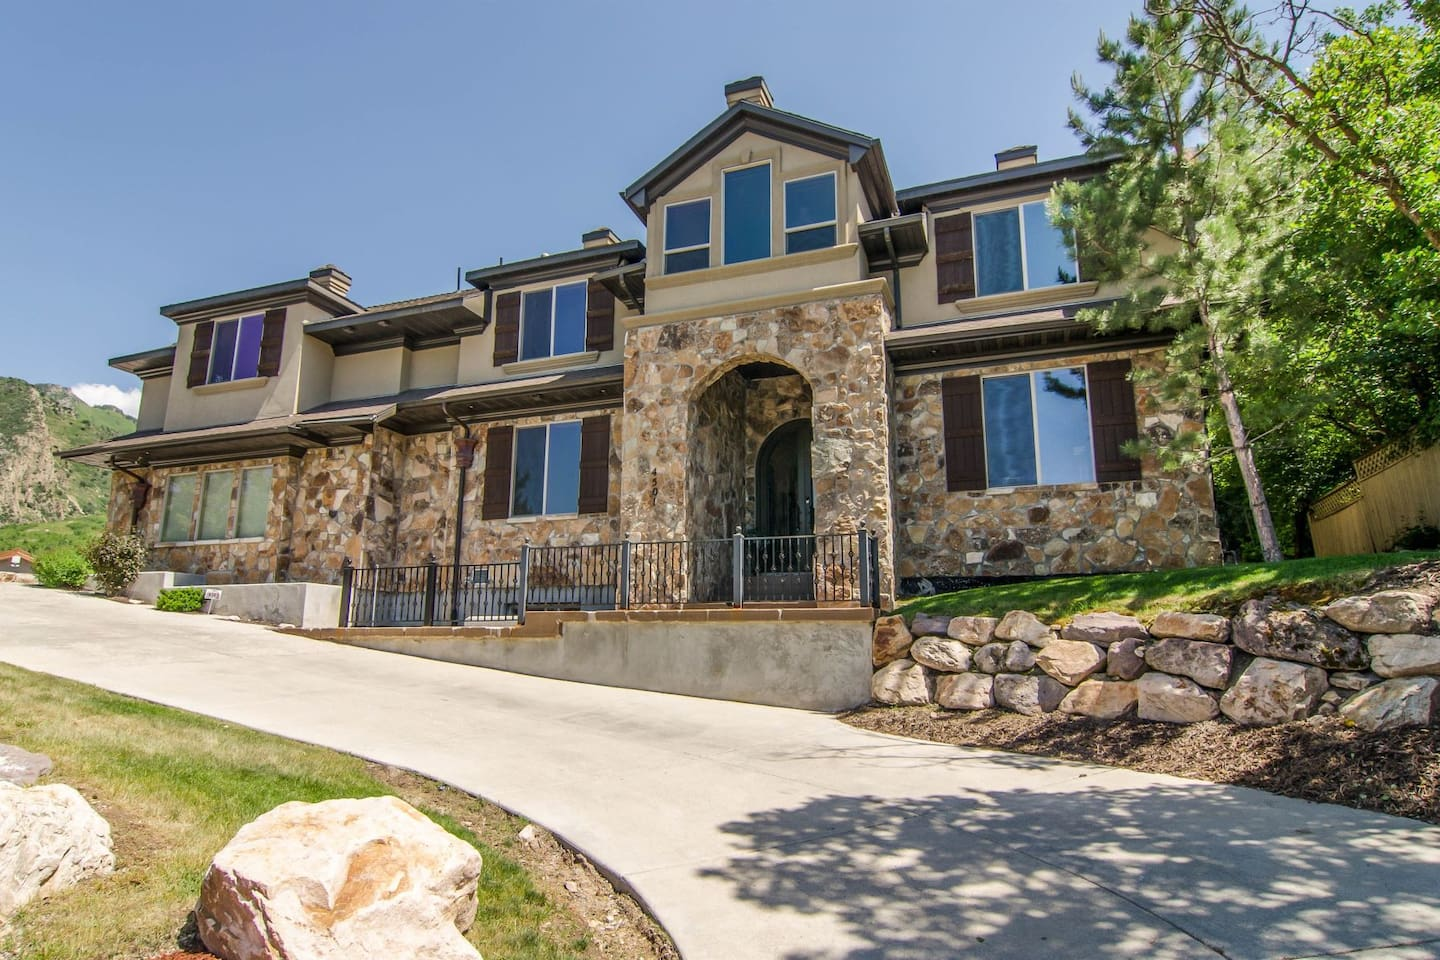 majesty cove mansion houses for rent in salt lake city utah